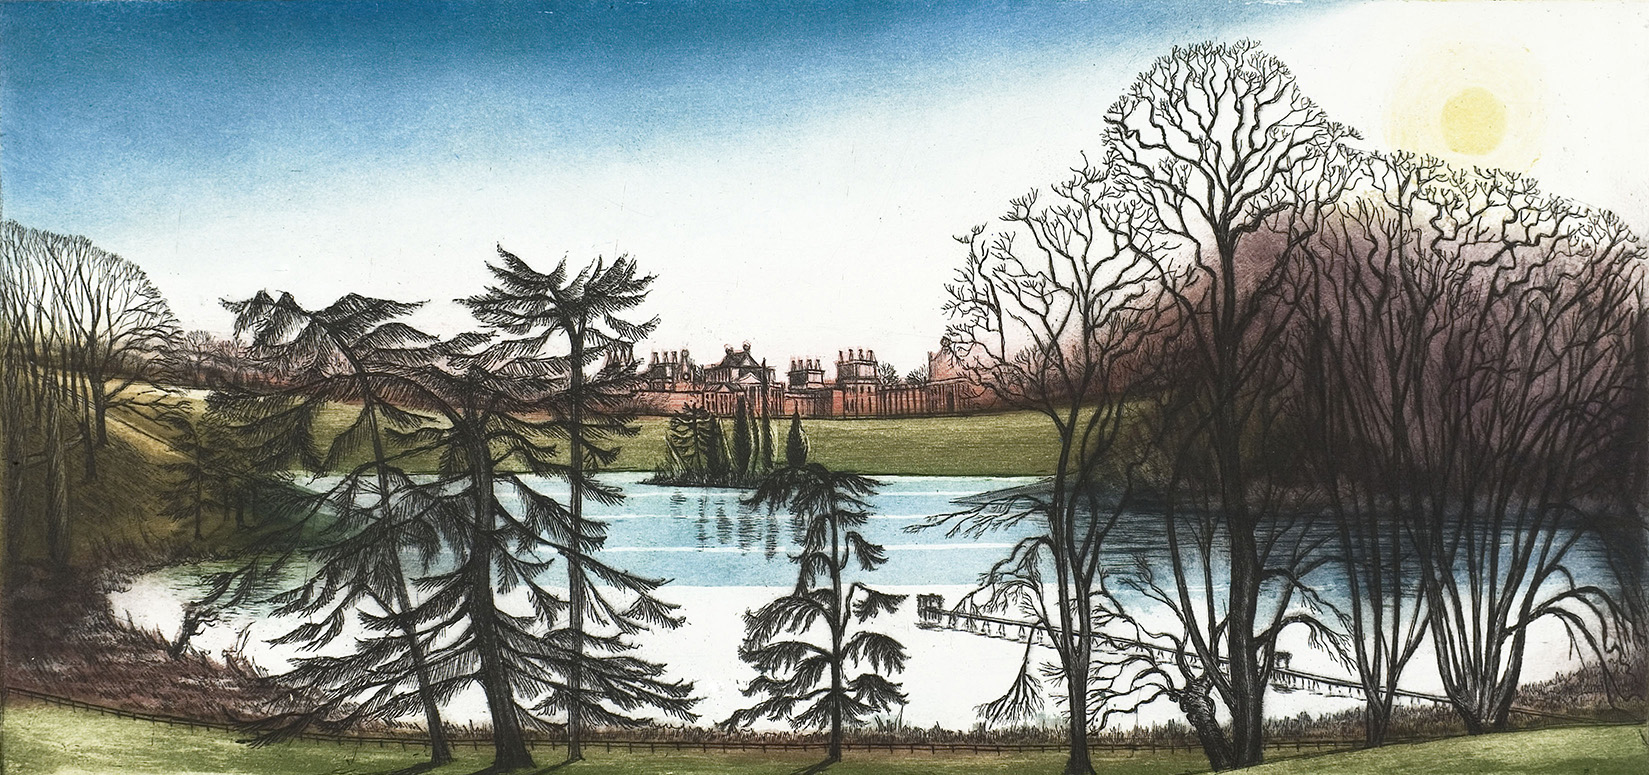 'Queen Pool Blenheim' by Morna Rhys